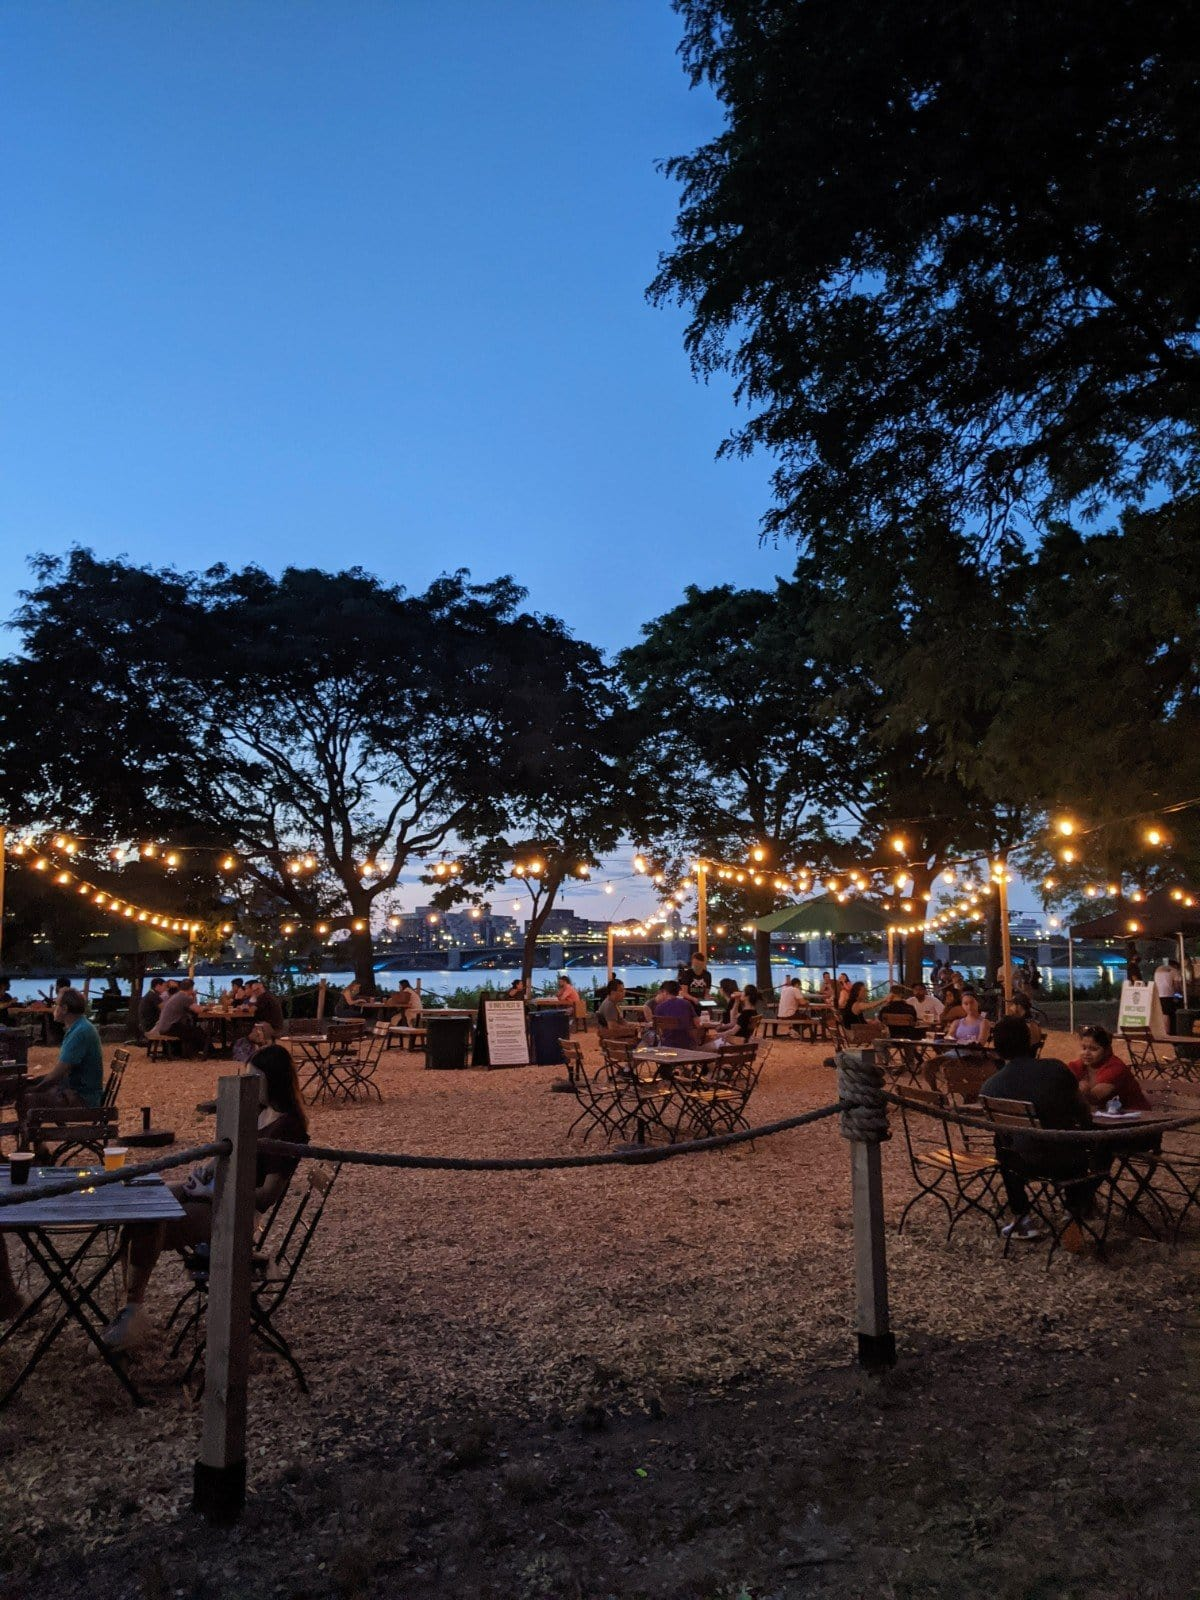 Beer garden on the Charles Esplanade at sunset with distant tables and hanging lights, photo by Roaming Boston